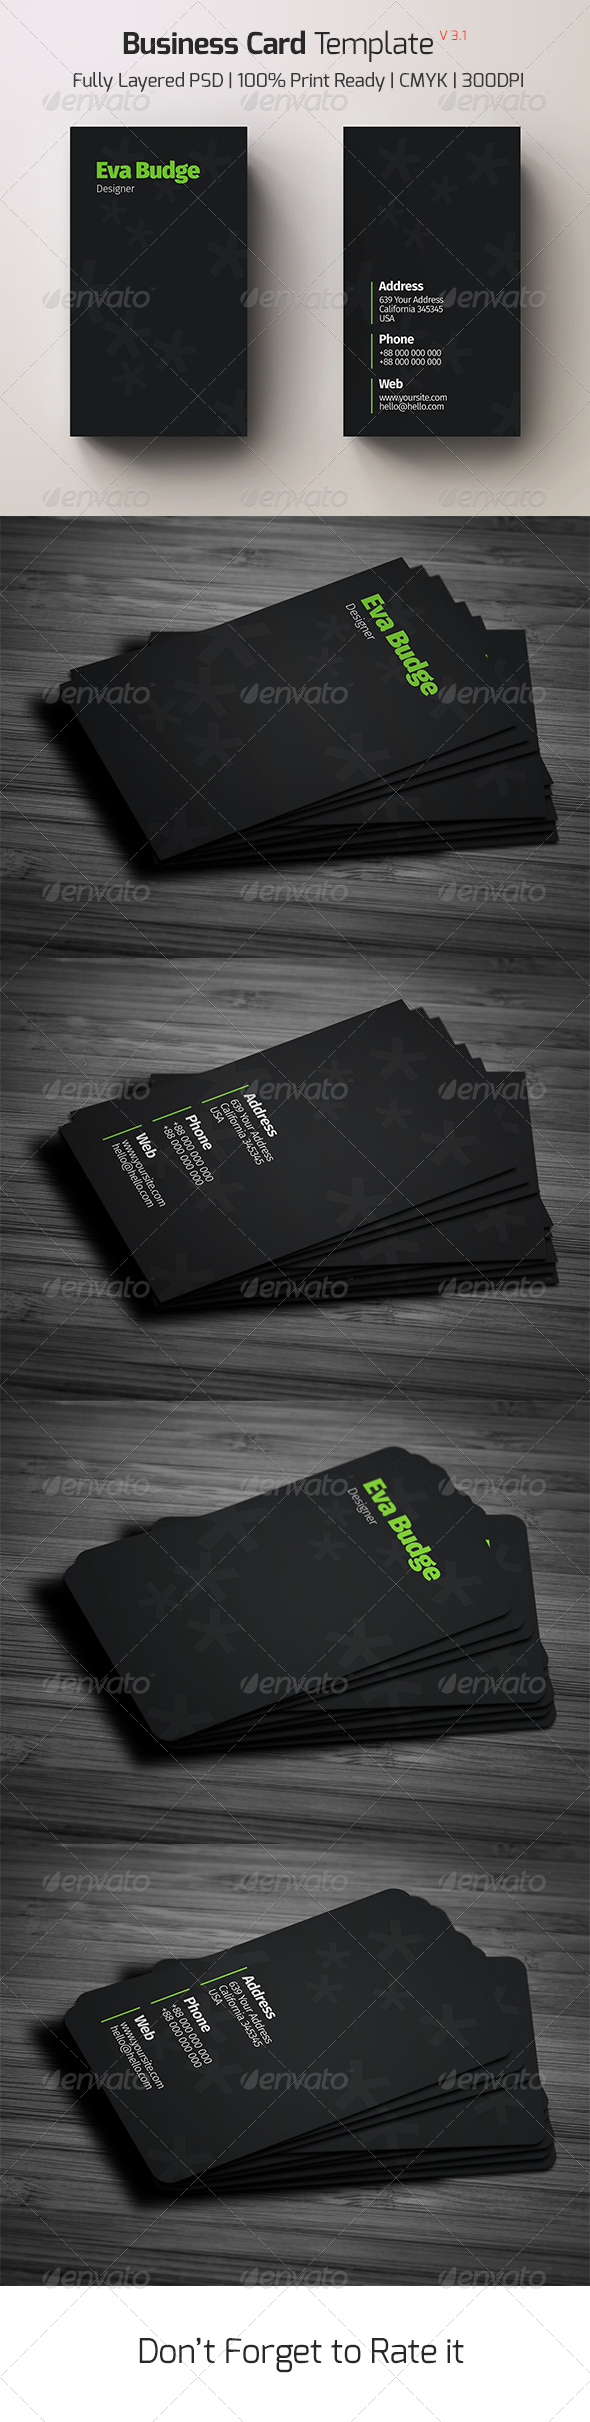 Business Card Template v - 3.1 - Creative Business Cards